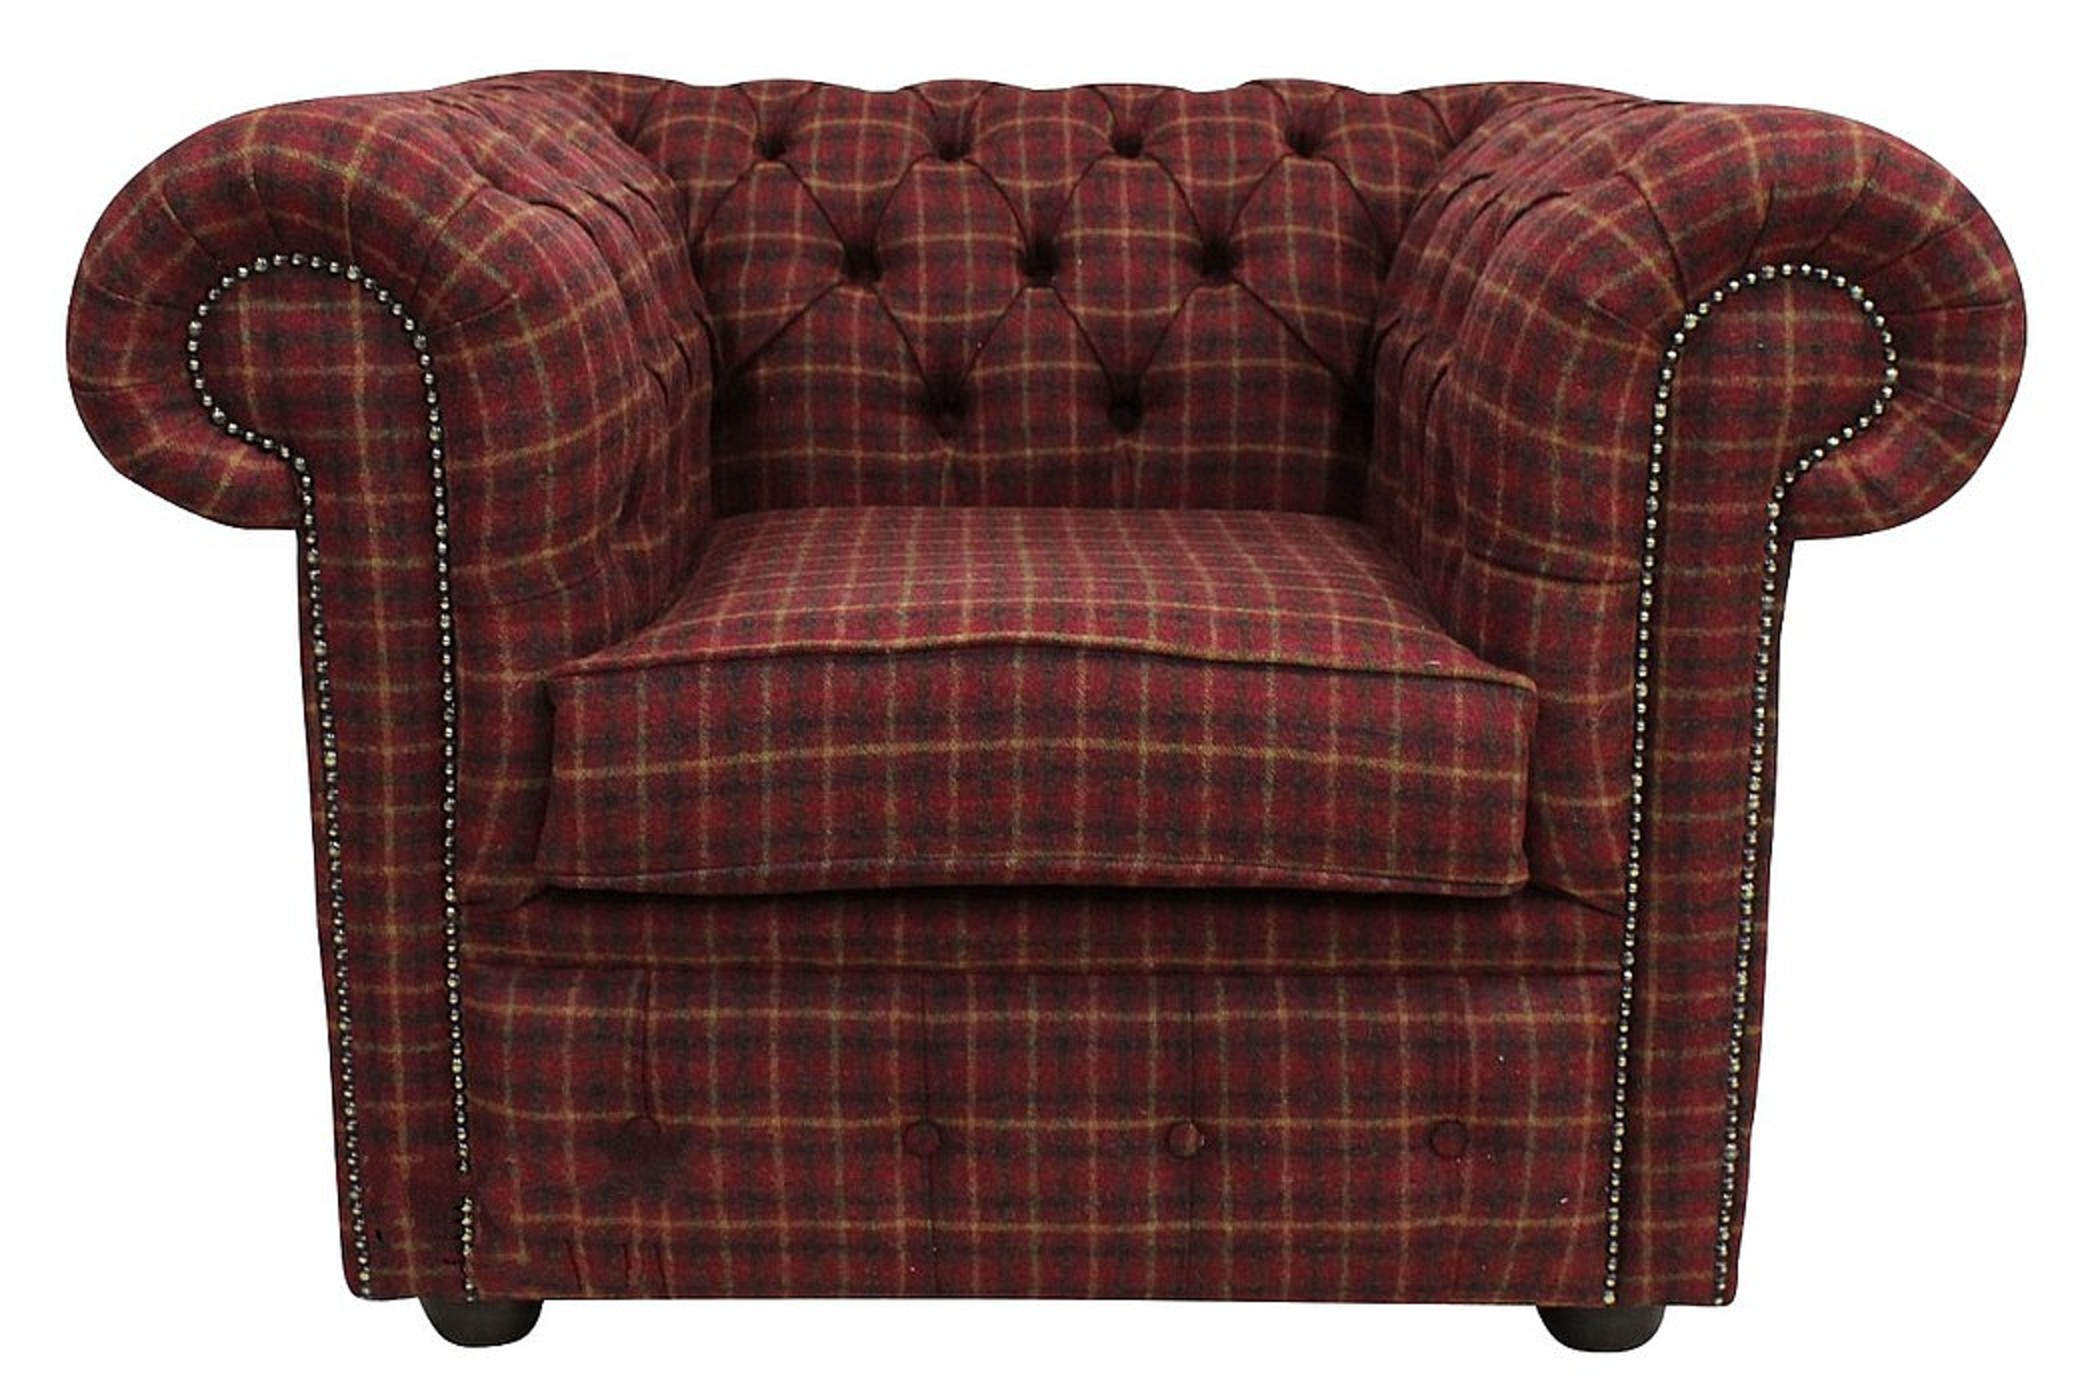 Charmant Chesterfield Arnold Wool Tweed Club Chair Low Back Armchair Balmoral Claret  Fabric